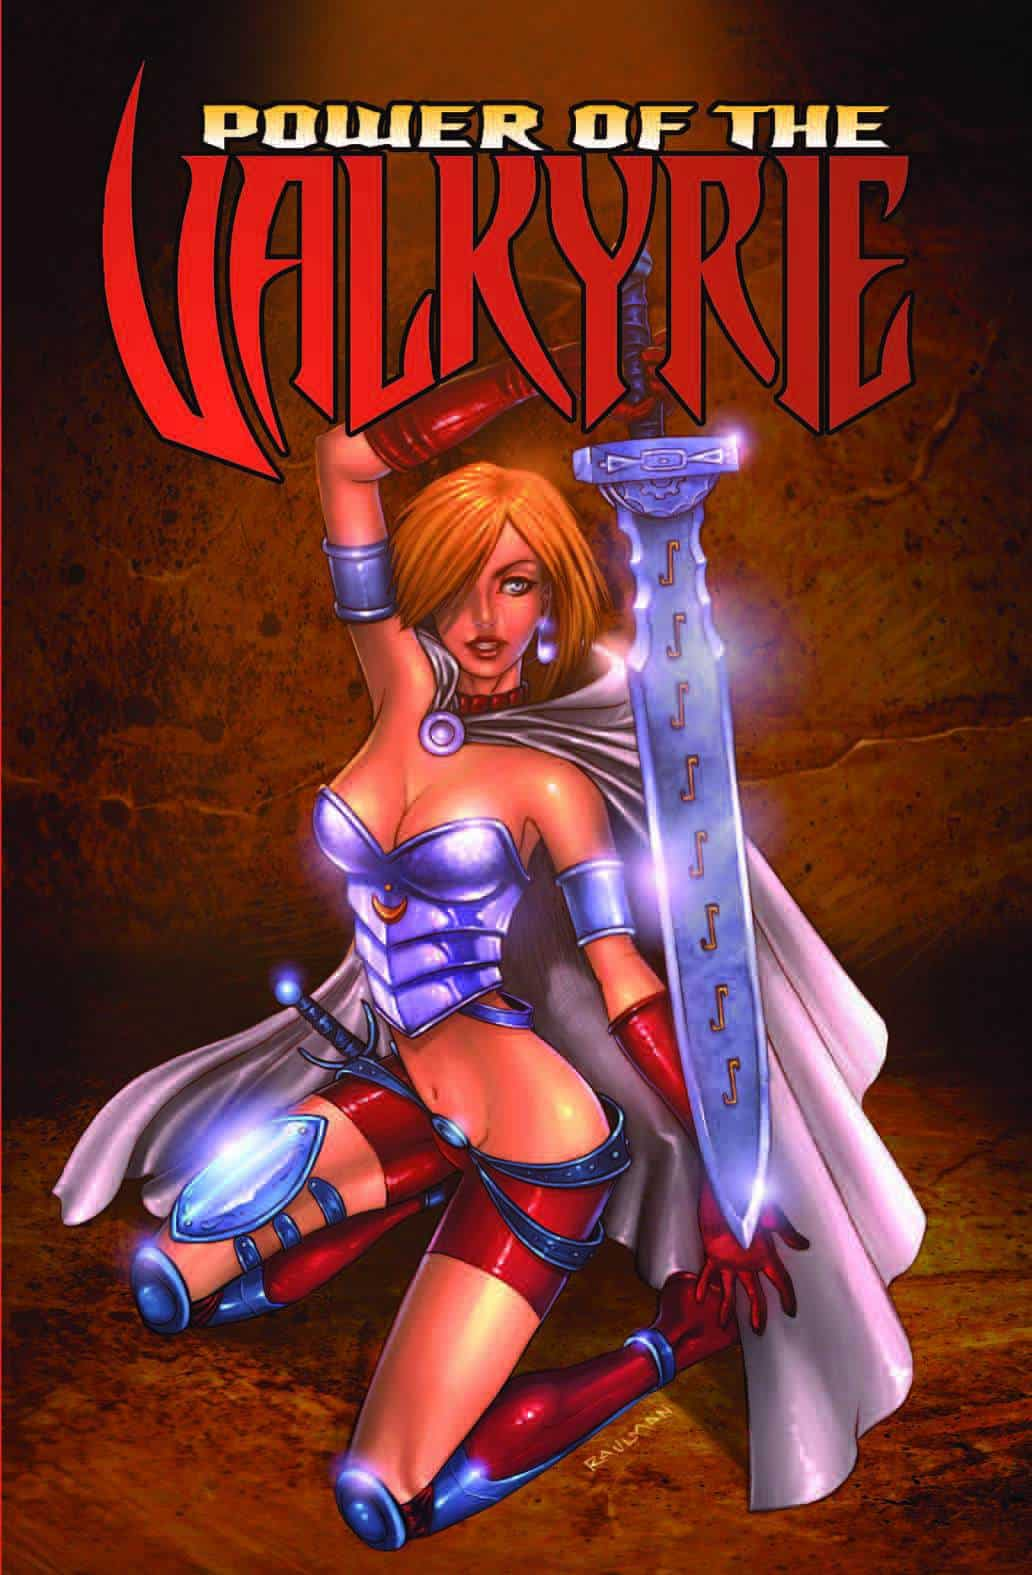 Power-of-the-Valkyrie-Cover